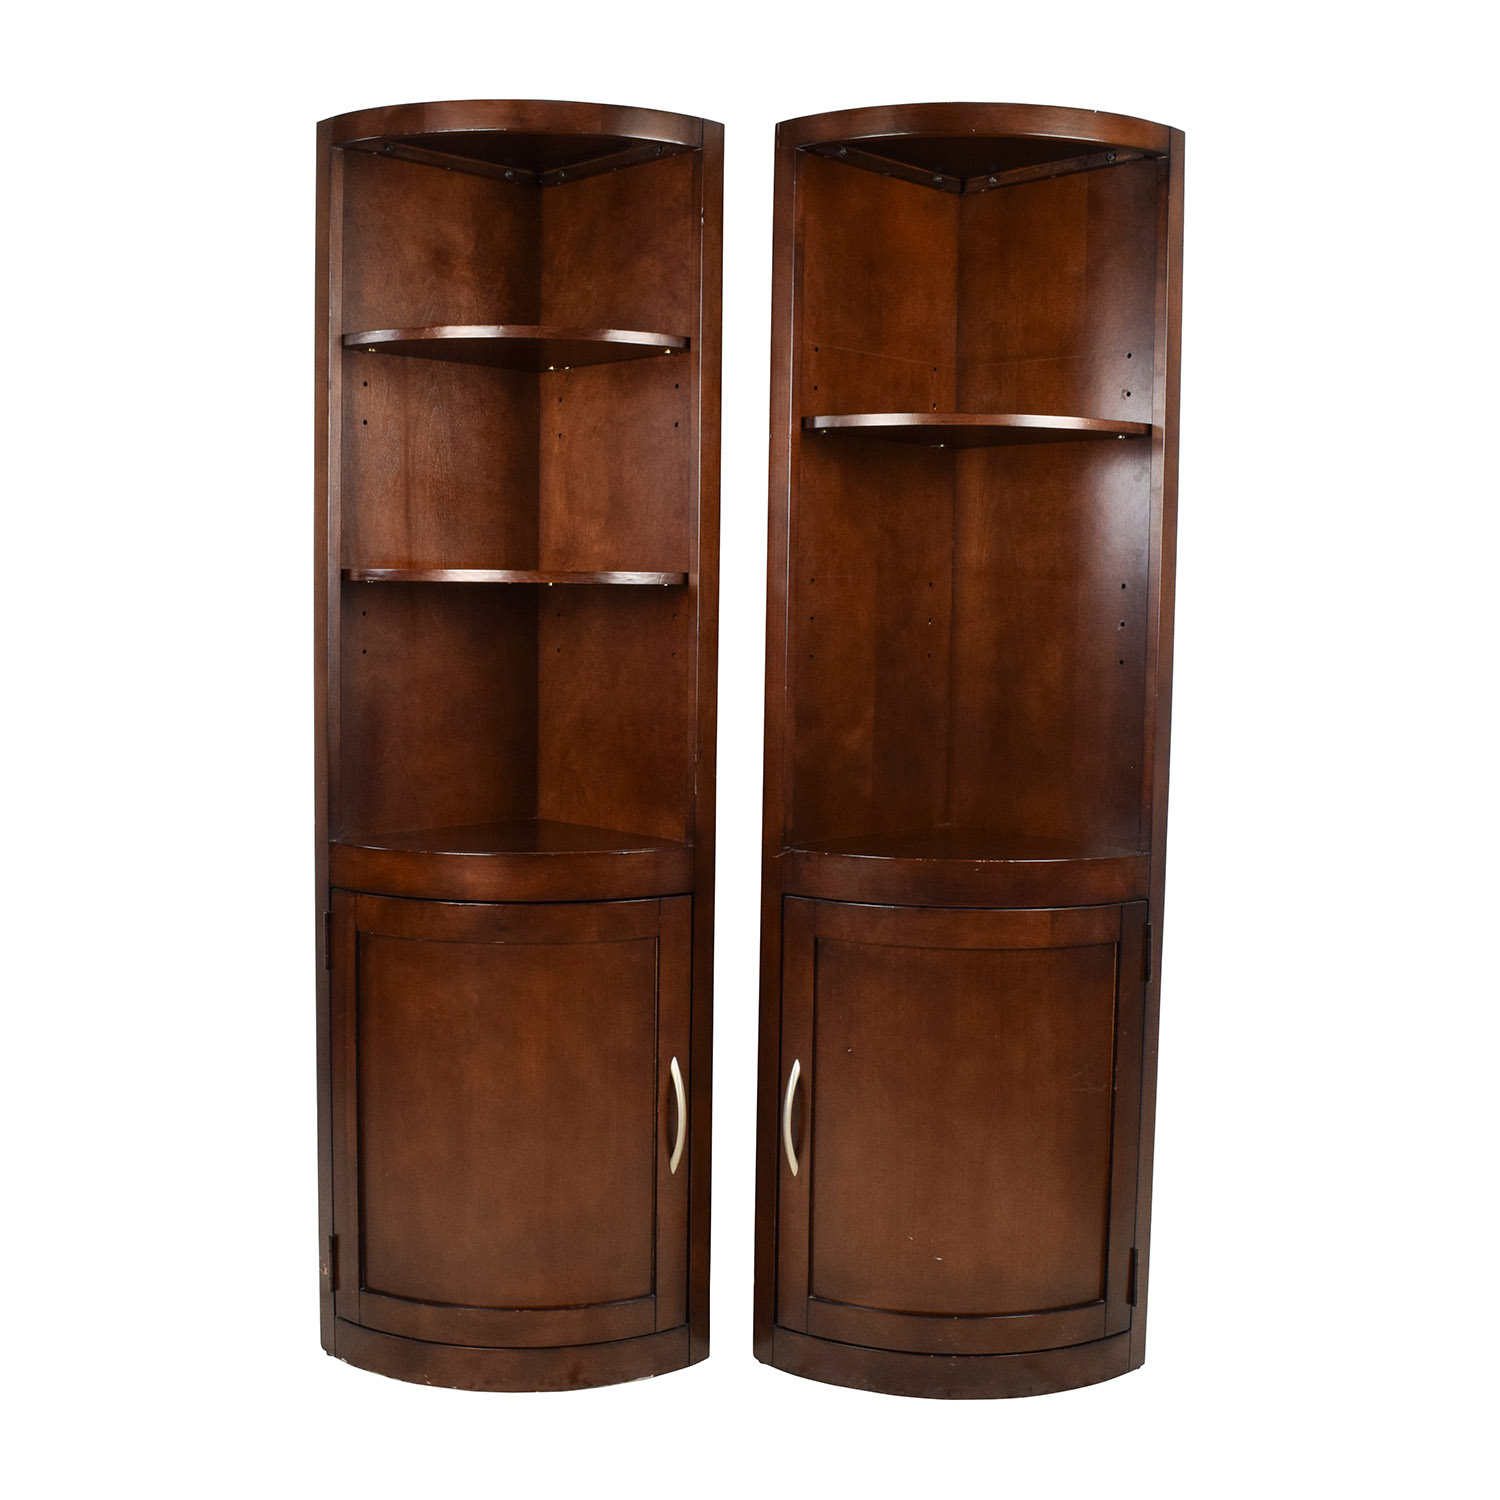 Wooden Corner Curio Shelves for sale